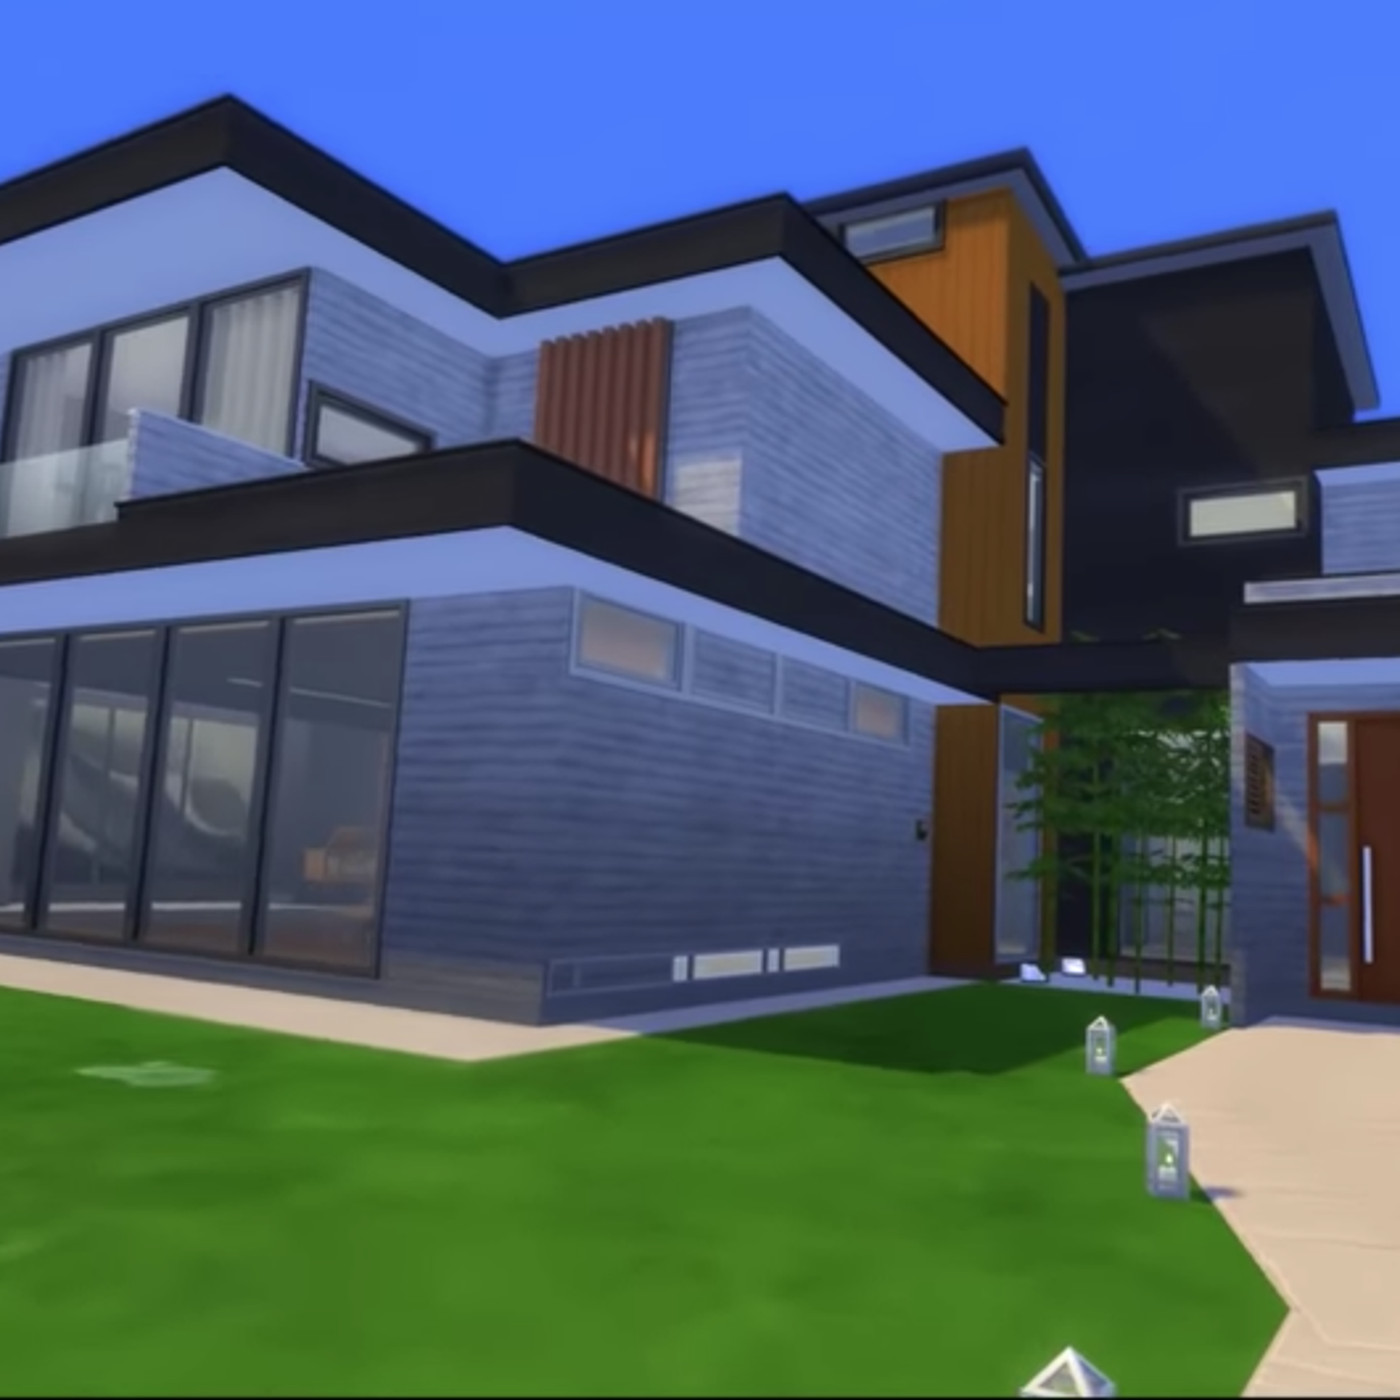 Parasite House Recreated In The Sims 4 Curbed All of the houses in bloxburg (besides the prebuilt ones the player can choose from when they start a new game) are, in fact. parasite house recreated in the sims 4